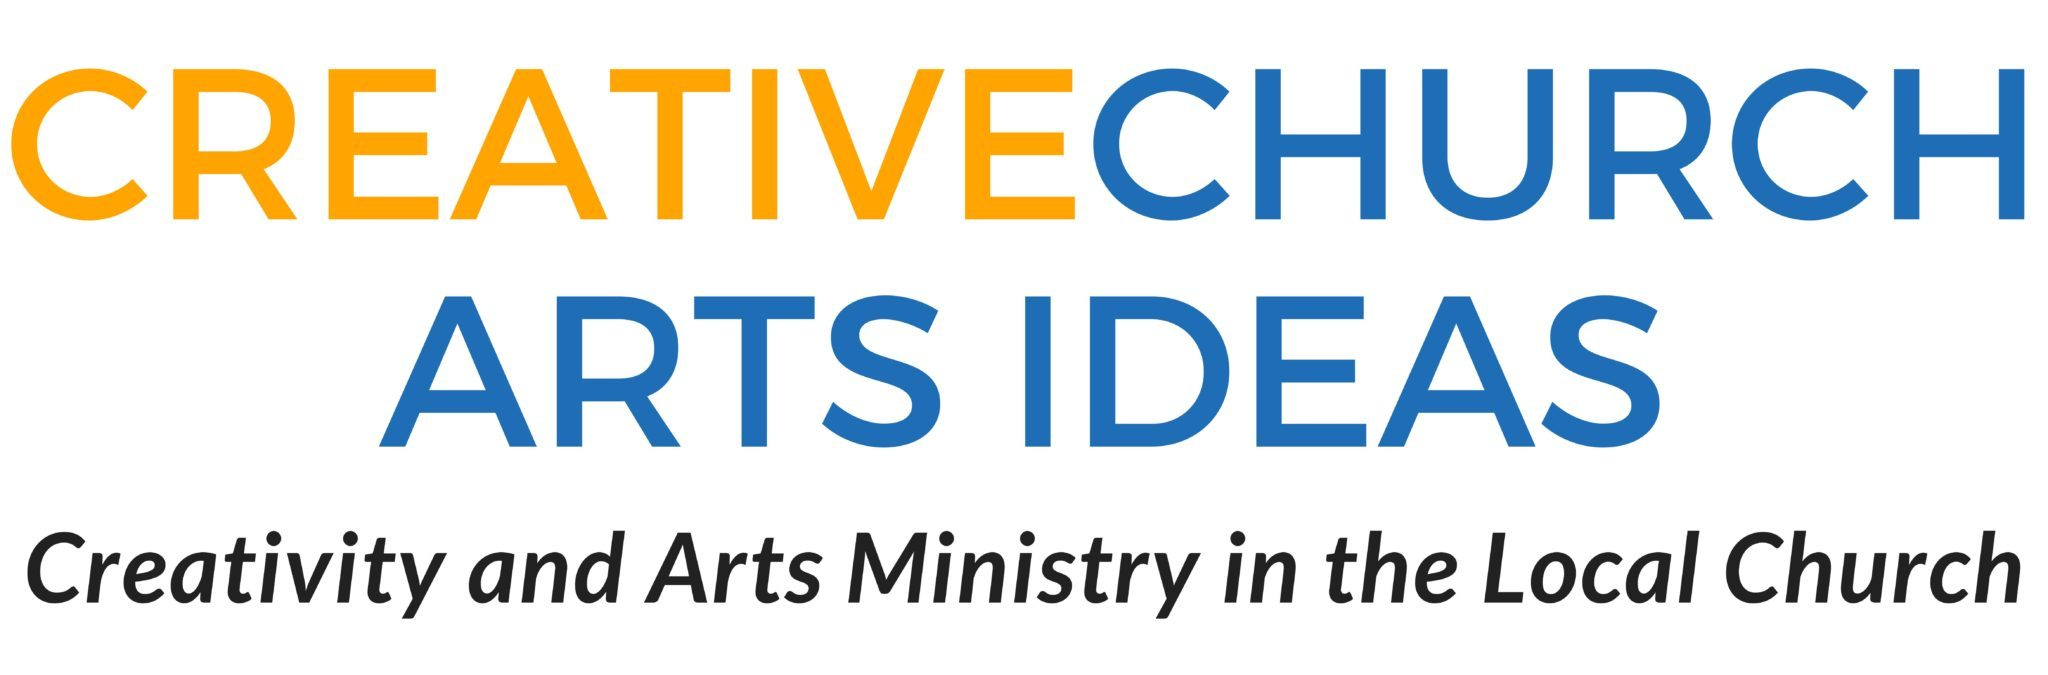 CREATIVECHURCH     ARTS IDEAS